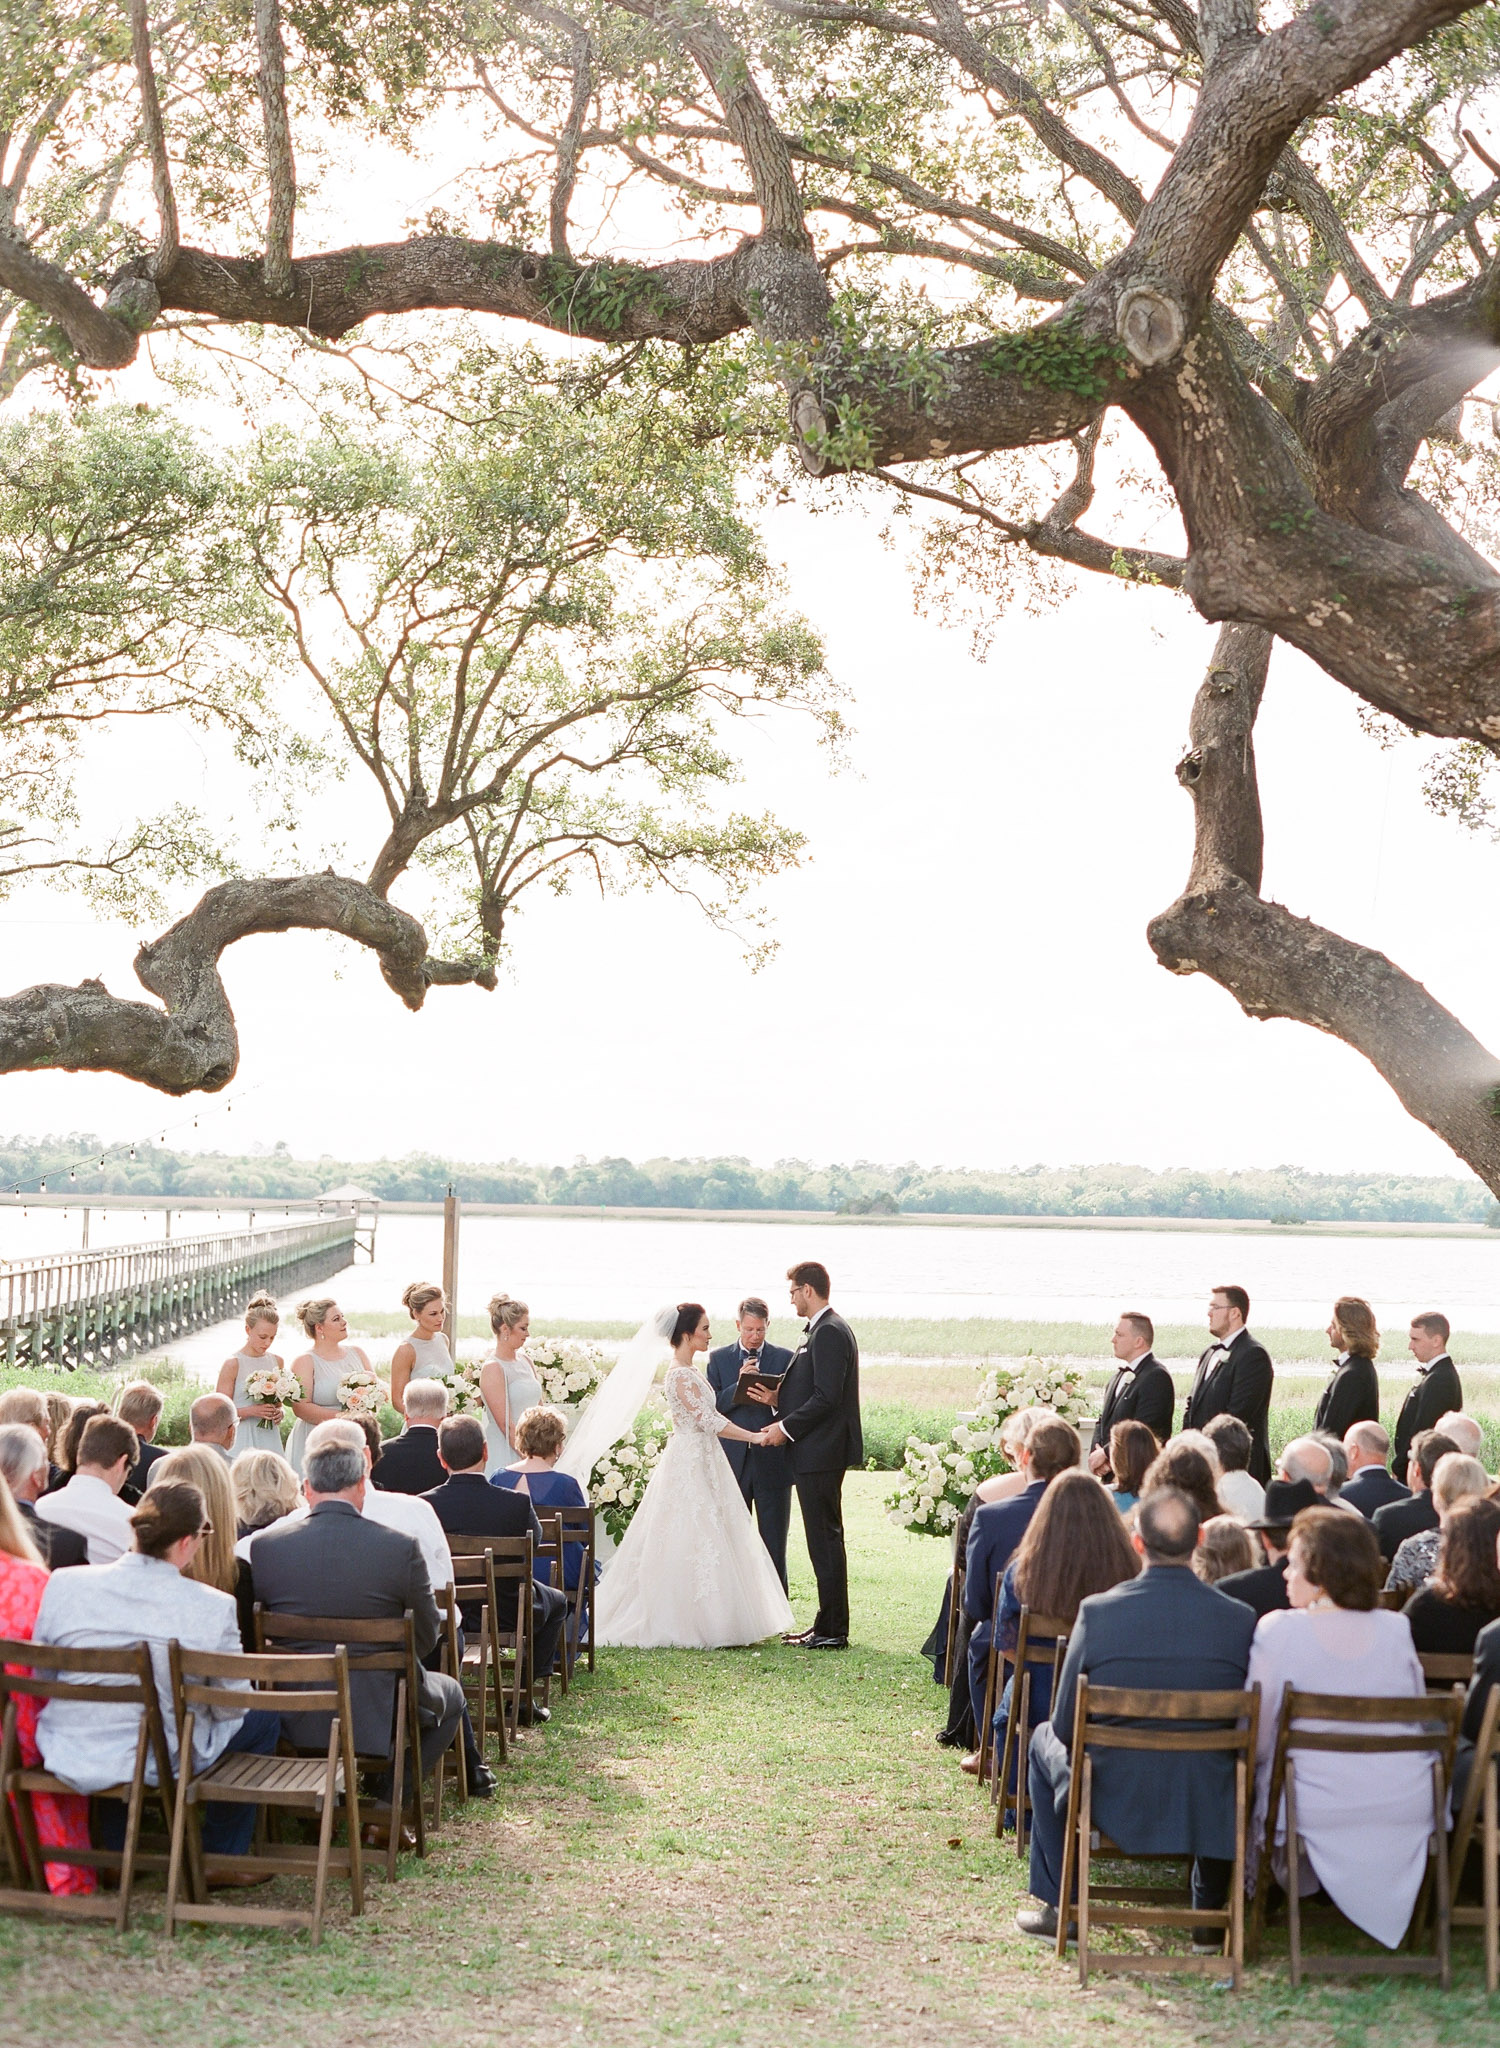 Charleston-Lowndes-Grove-Wedding-PPHG-77.jpg